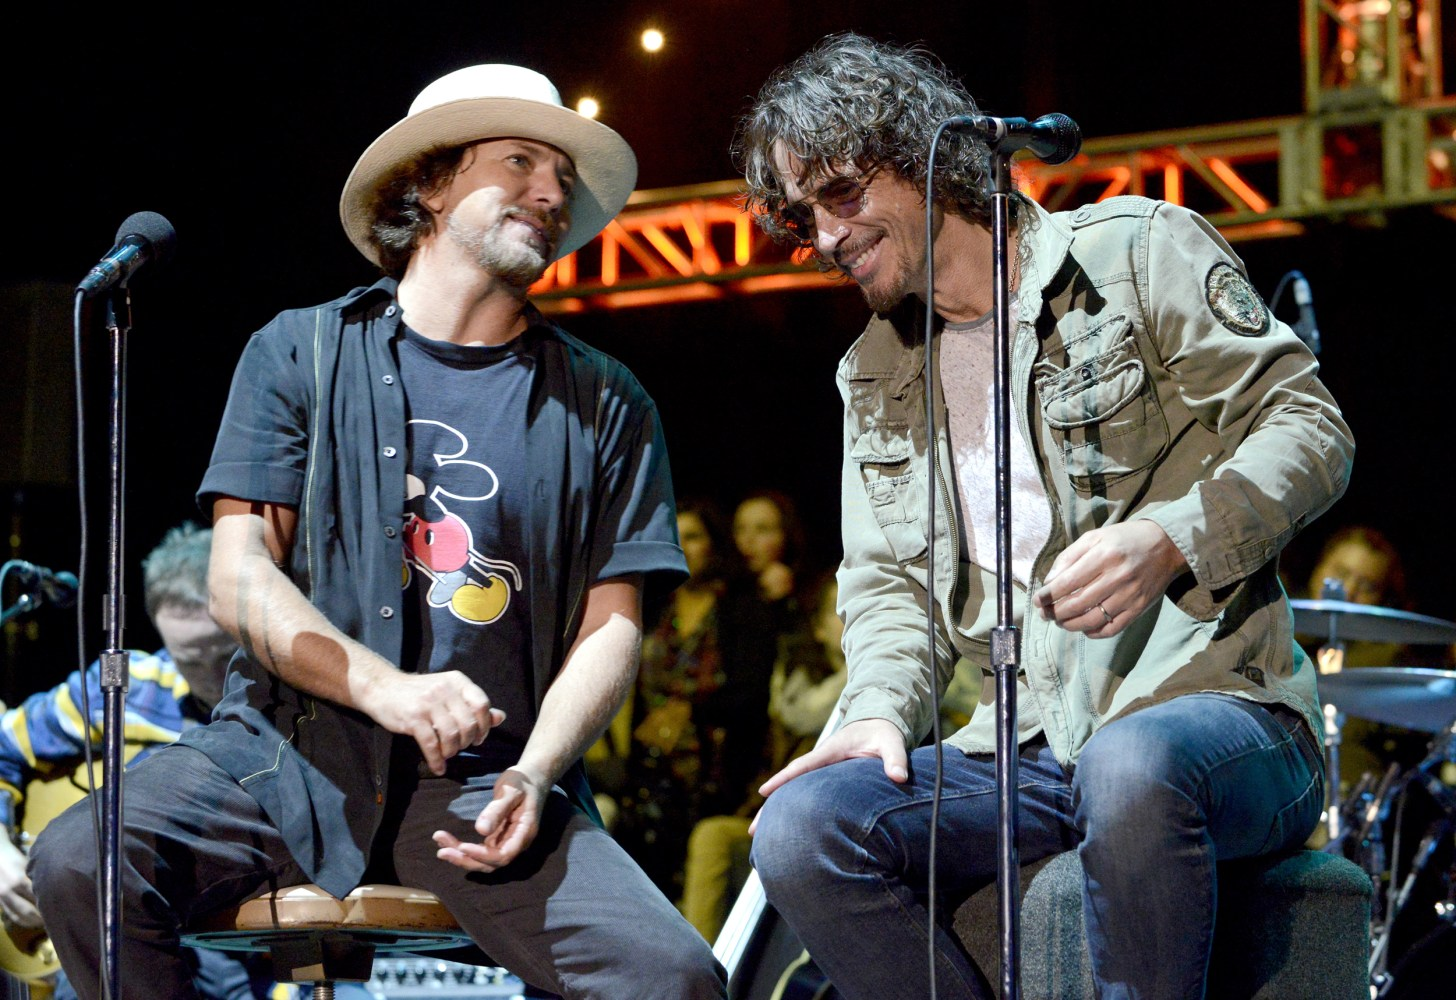 Eddie Vedder And Chris Cornell Chris Cornell, Dead of...